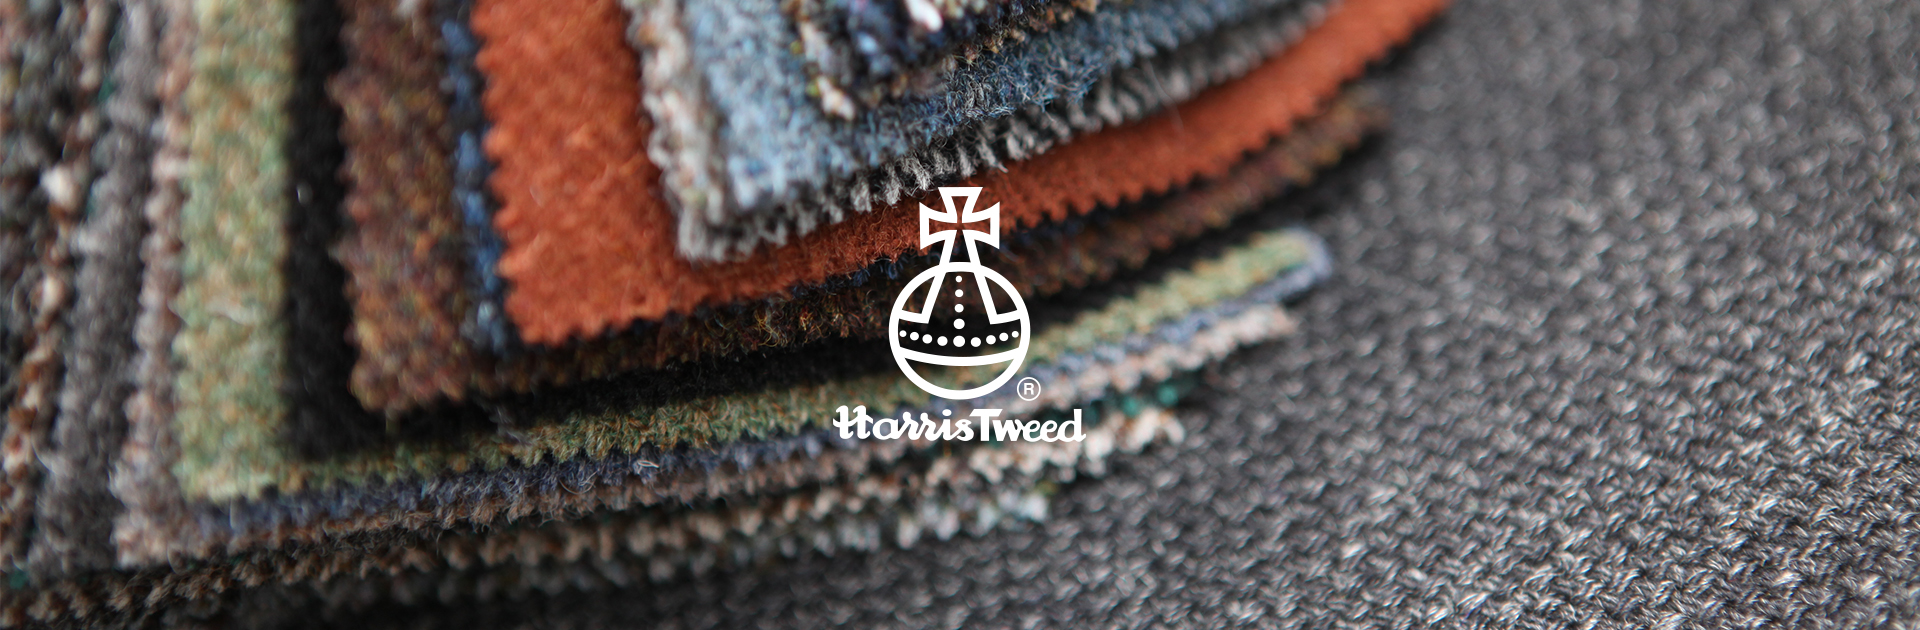 harris tweed 5